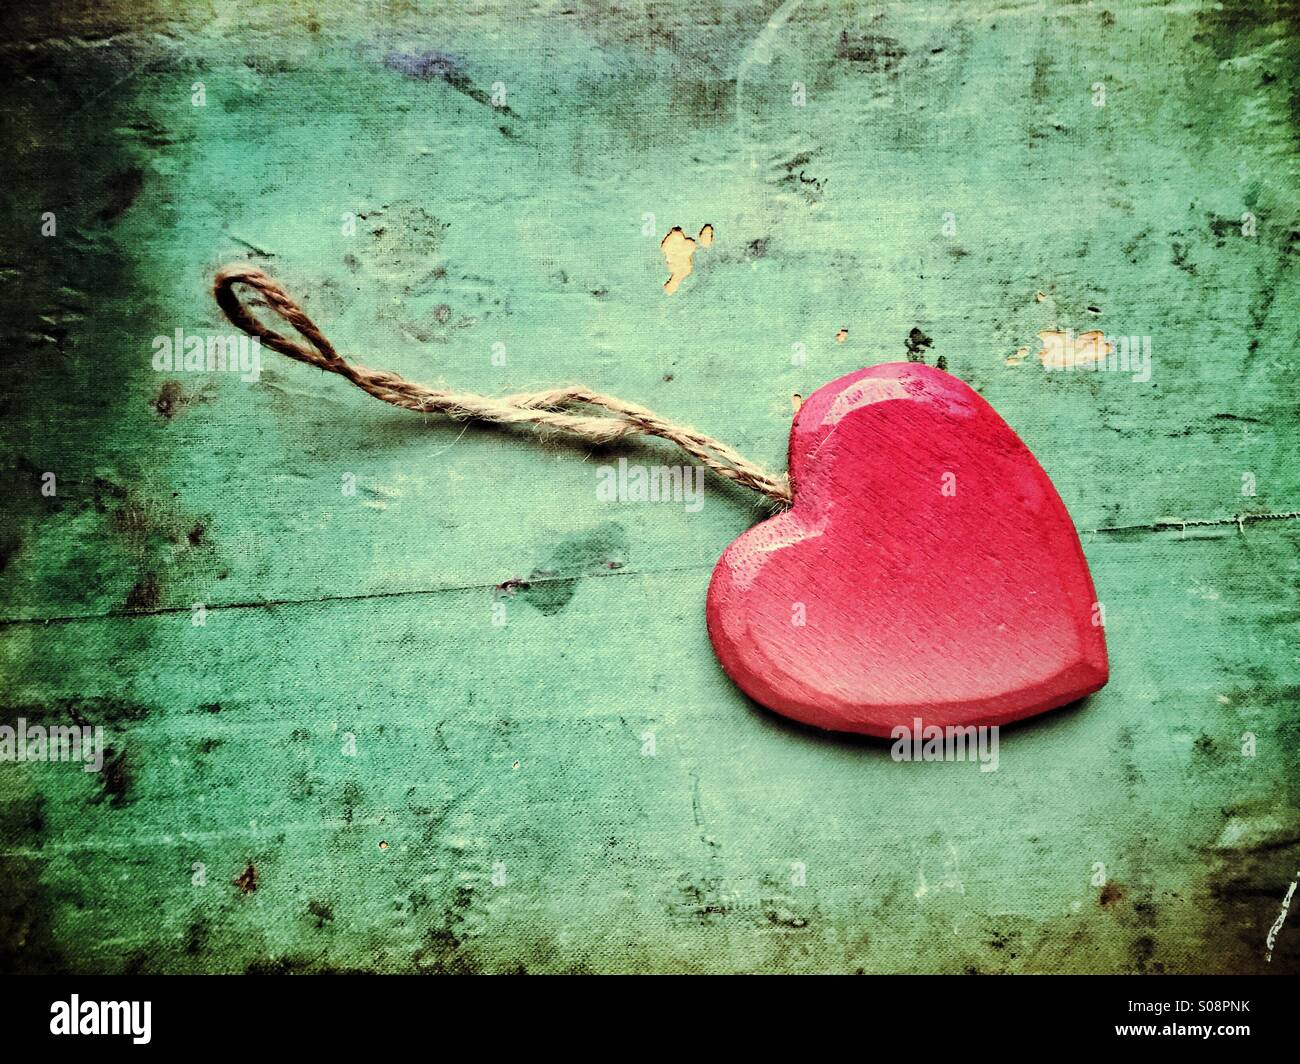 Red wooden heart with a thread on grungy background - Stock Image